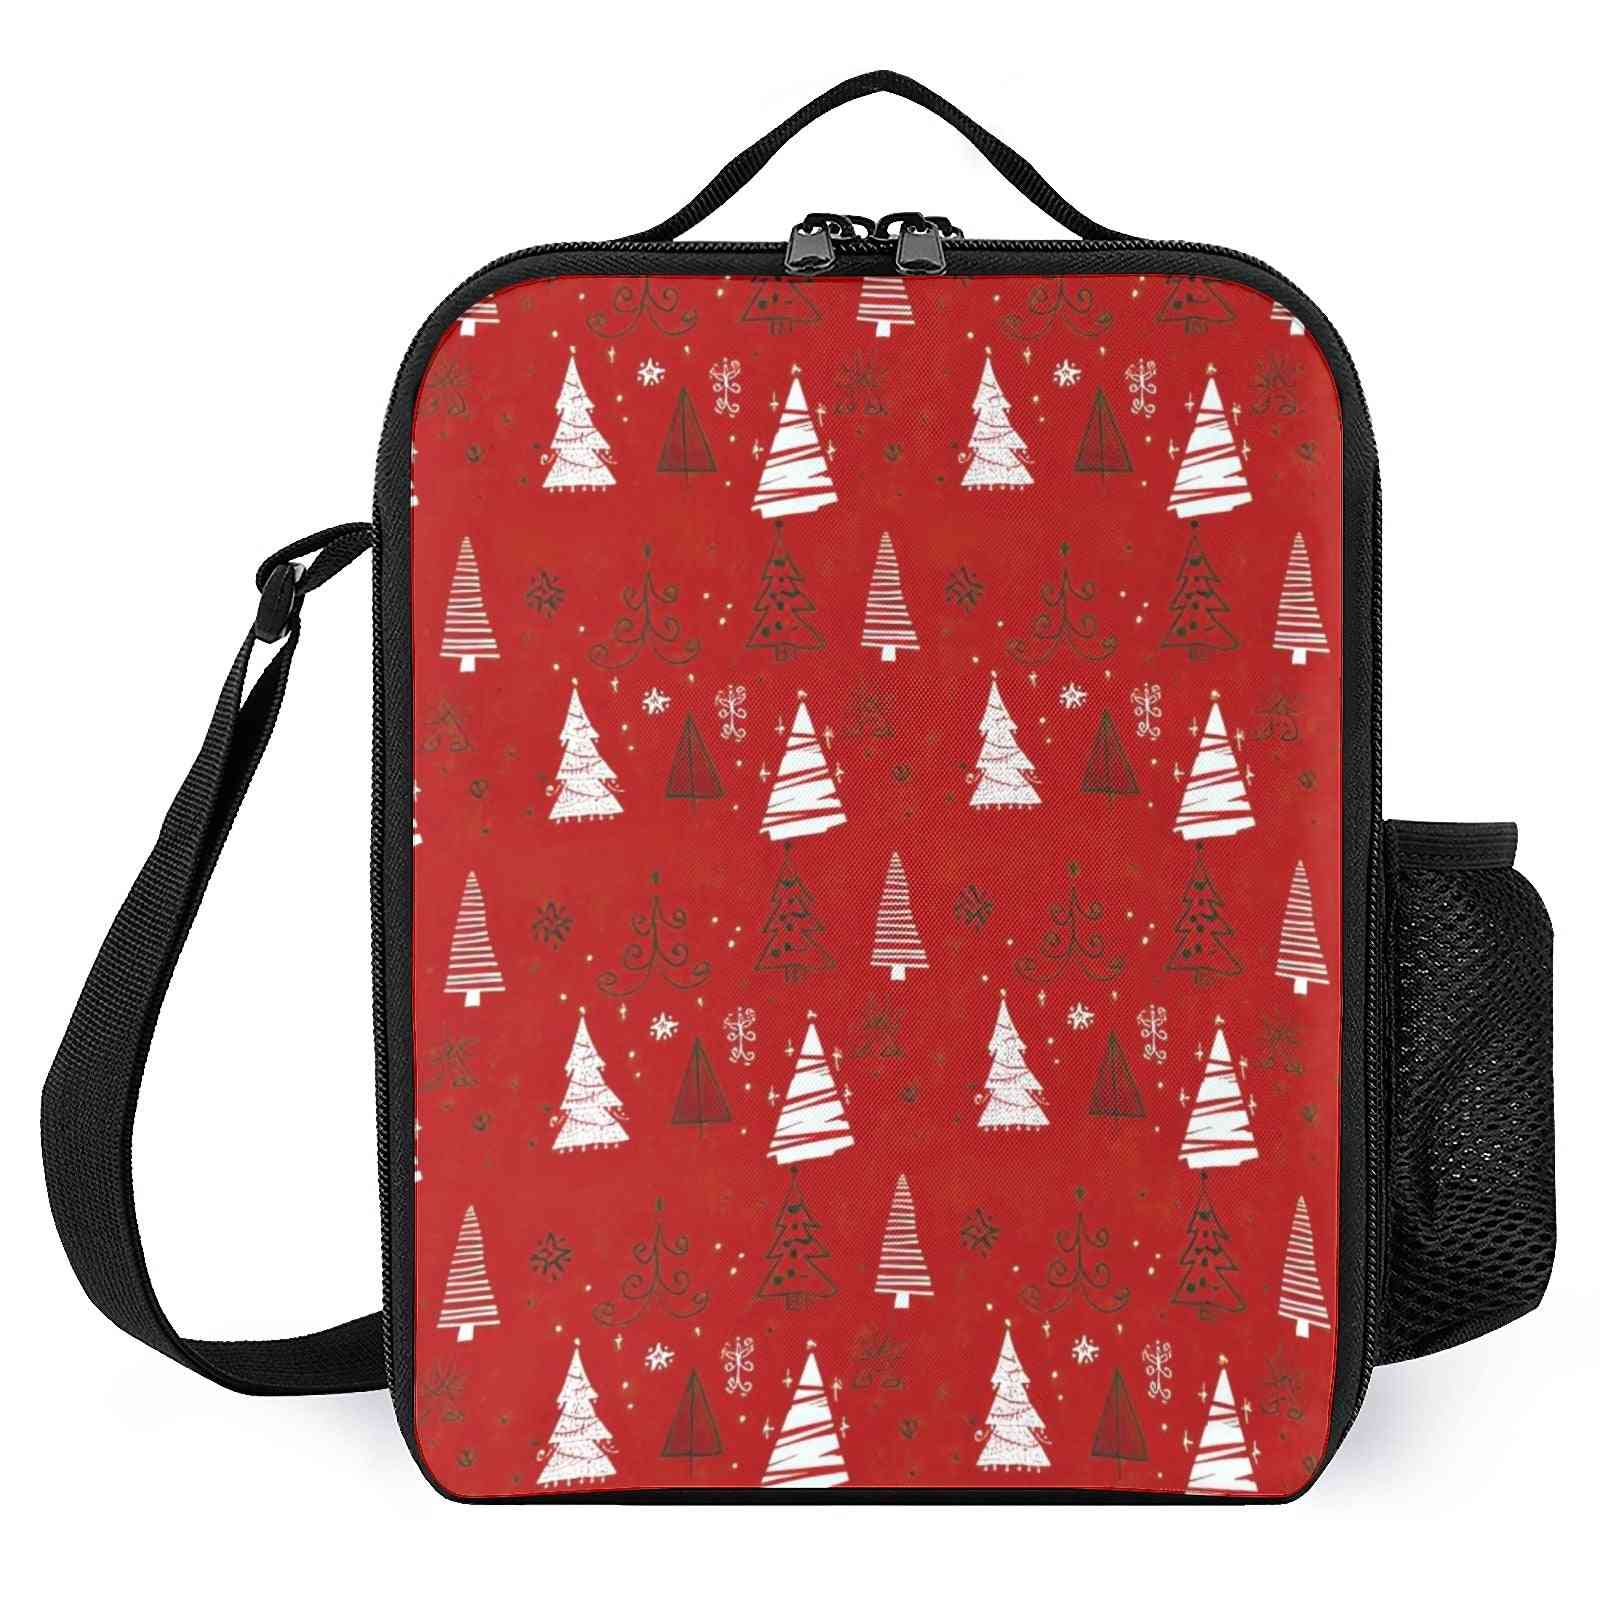 Hand Drawn Christmas Trees Pattern Printed Lunch Bags